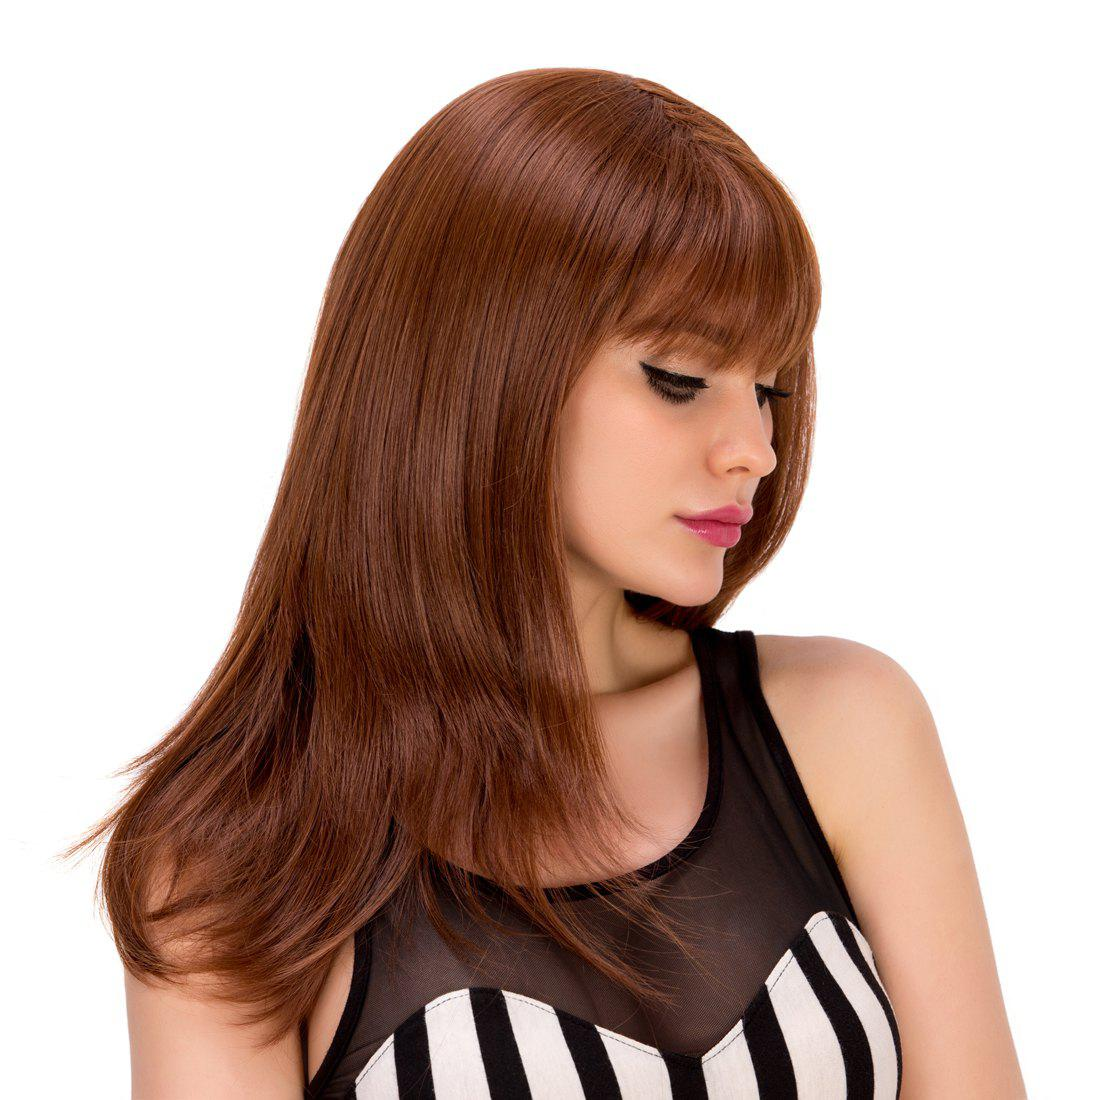 Elegant Full Bang Straight Synthetic Long Layered Red Brown Wig For Women - RED BROWN